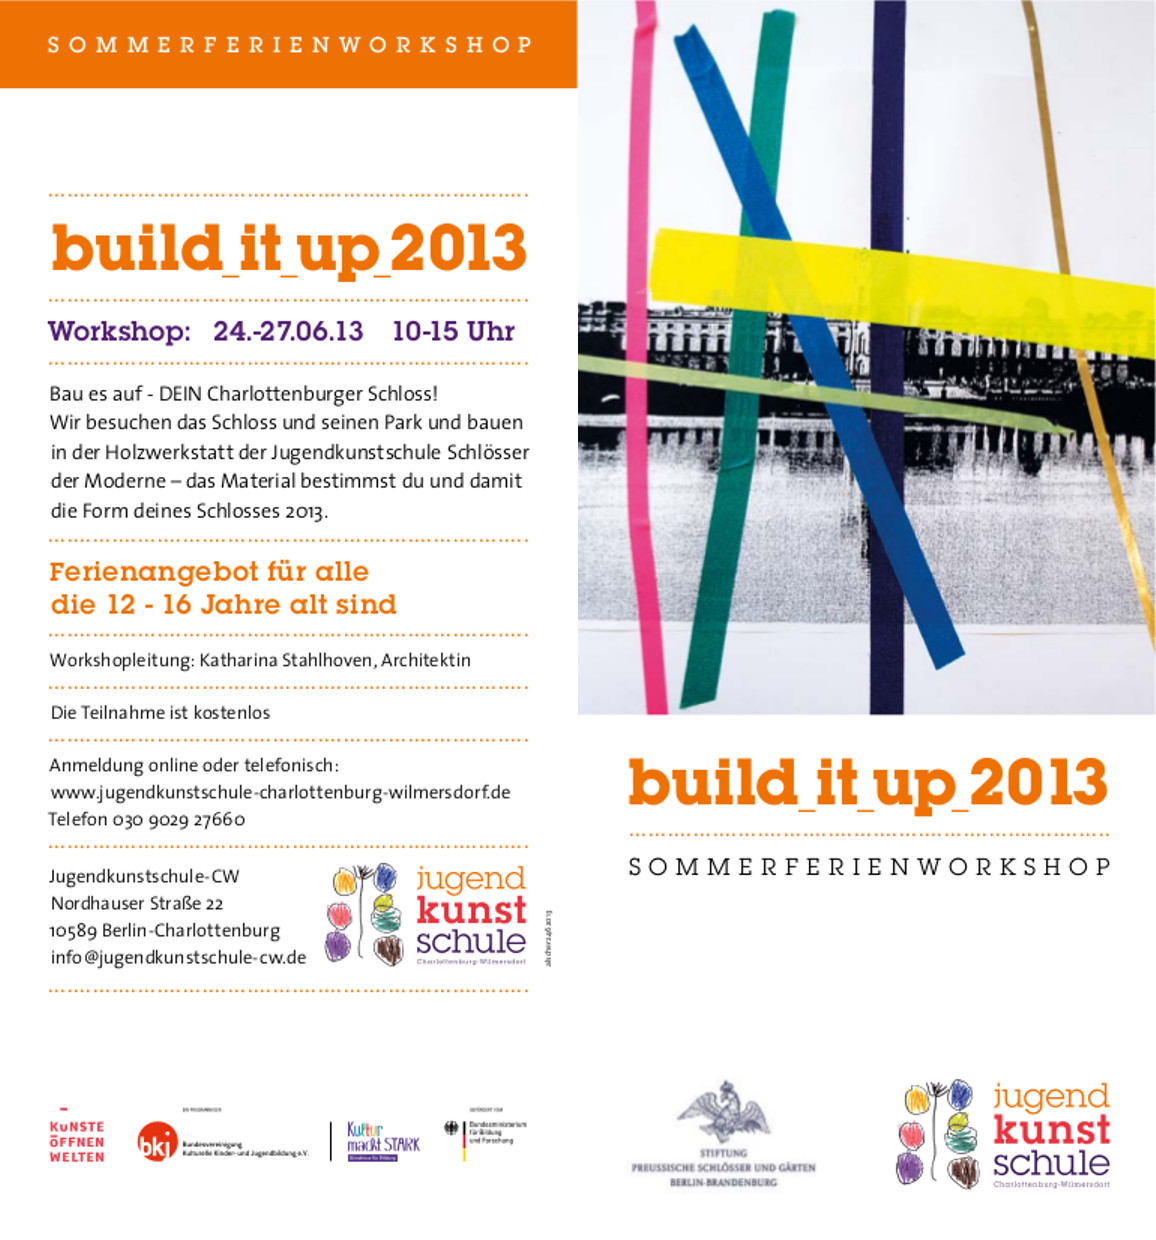 build_it_up_2013